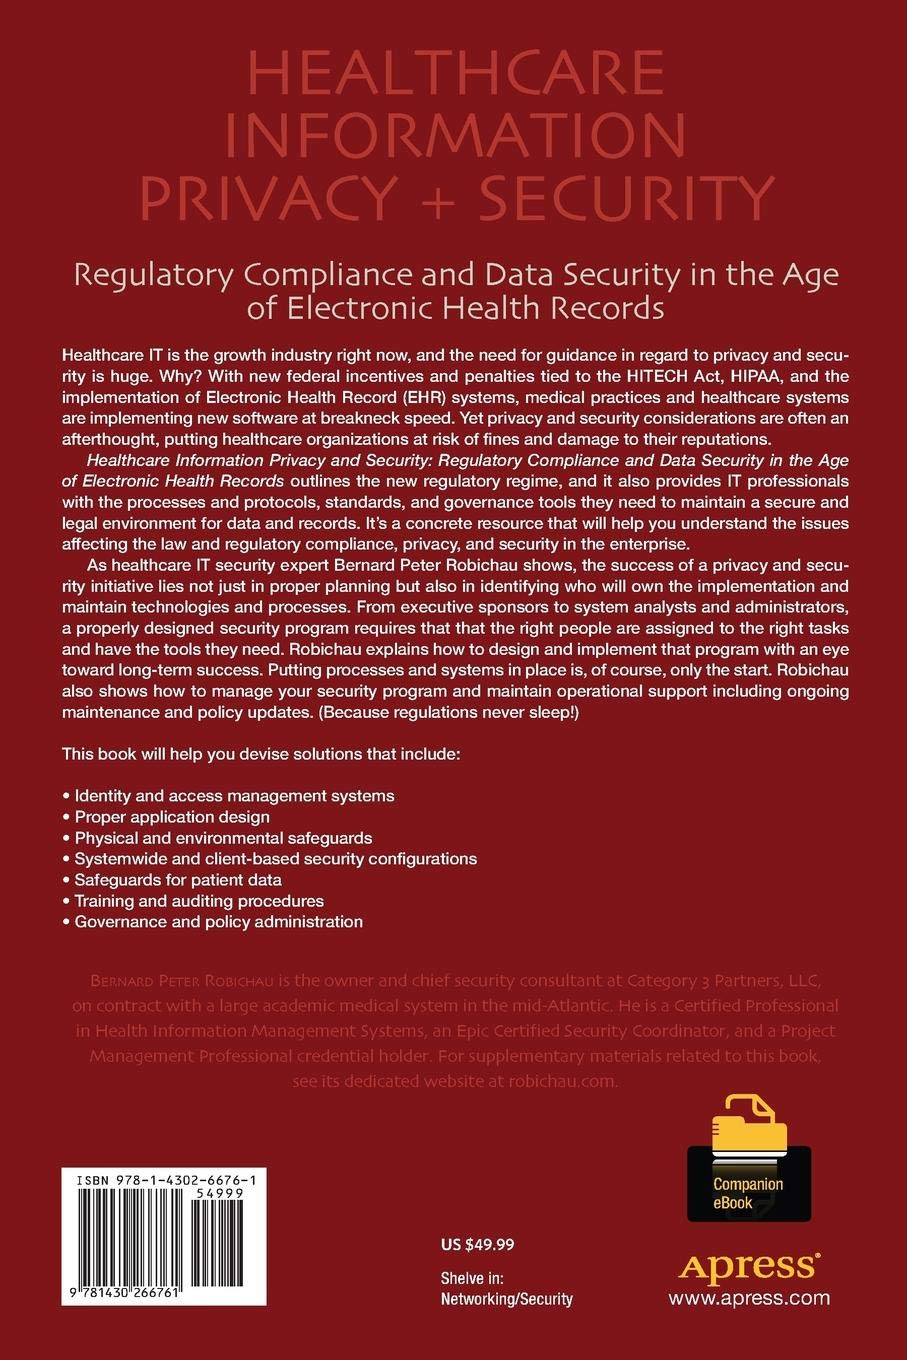 Healthcare Information Privacy and Security: Regulatory